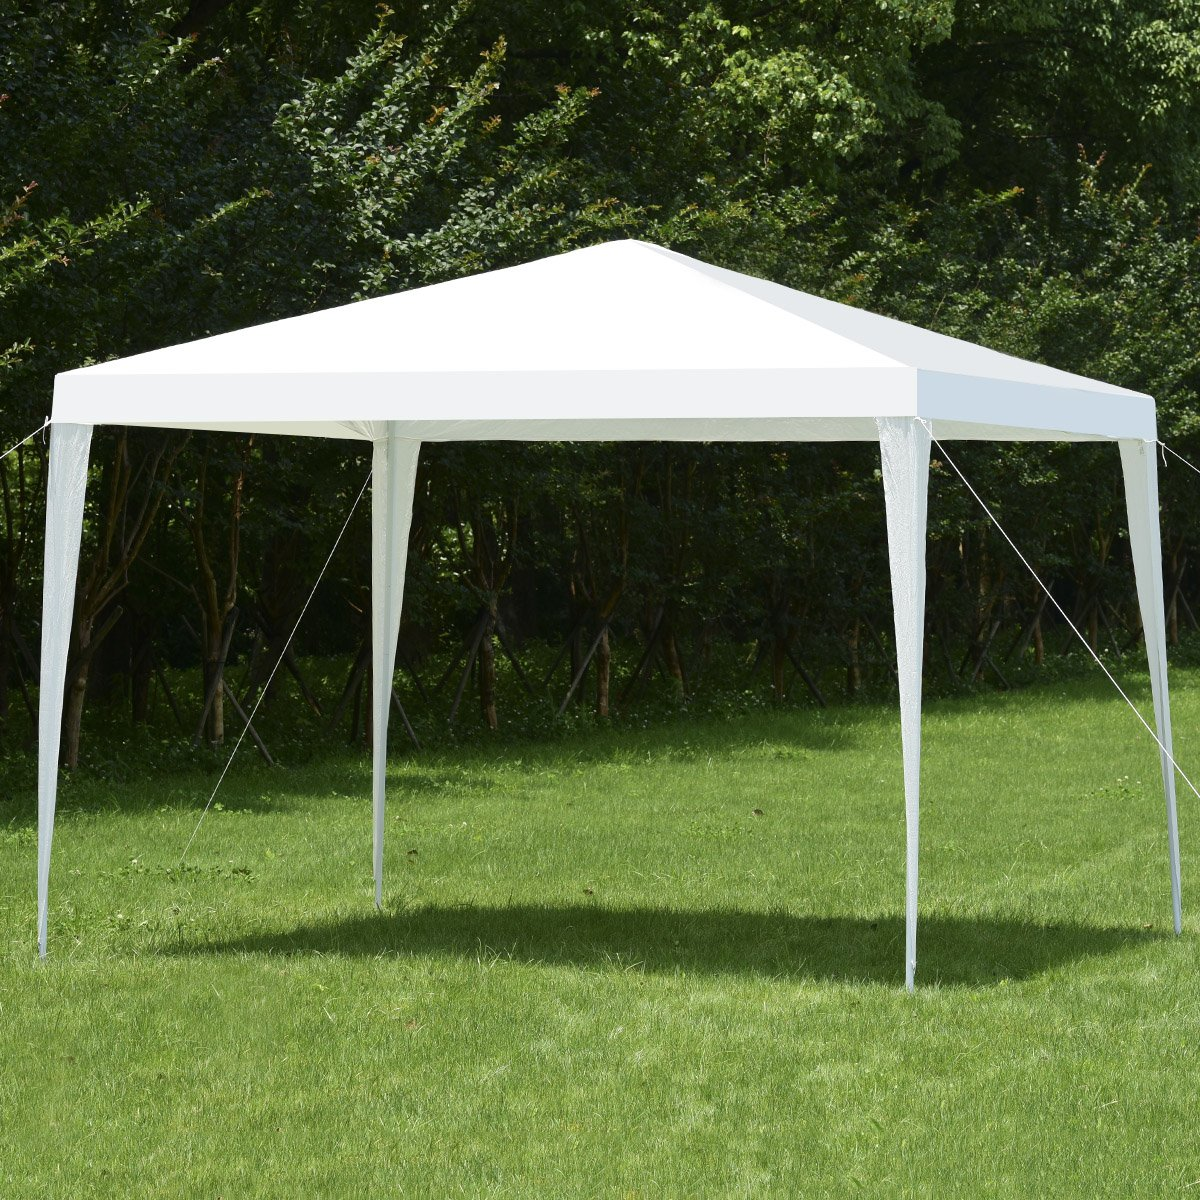 Costway 3X3M Outdoor Garden Gazebo Canopy Party Wedding Tent Shelter (Green)